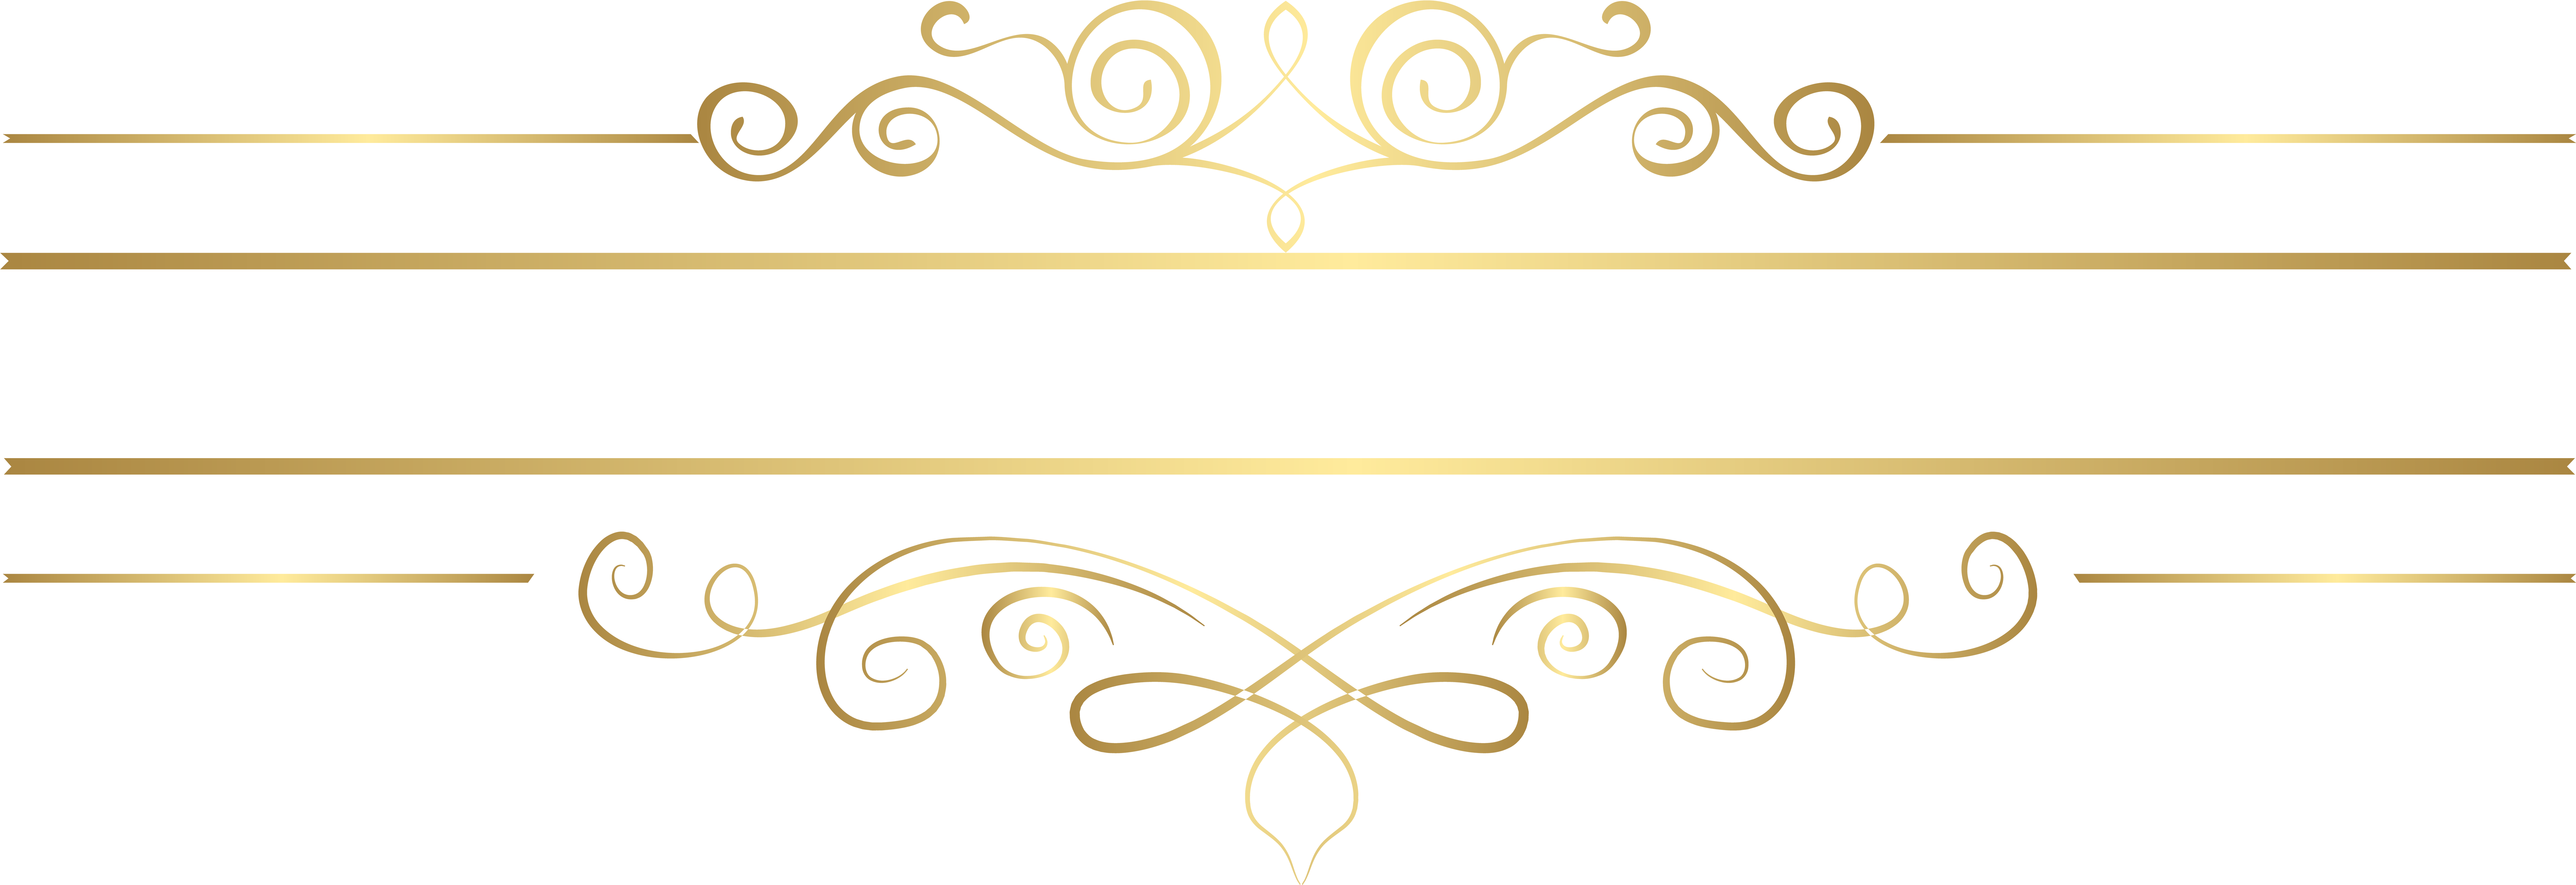 Gold decorative lines clipart banner freeuse download HD Gold Decorative Lines Png Transparent Background - Decorative ... banner freeuse download